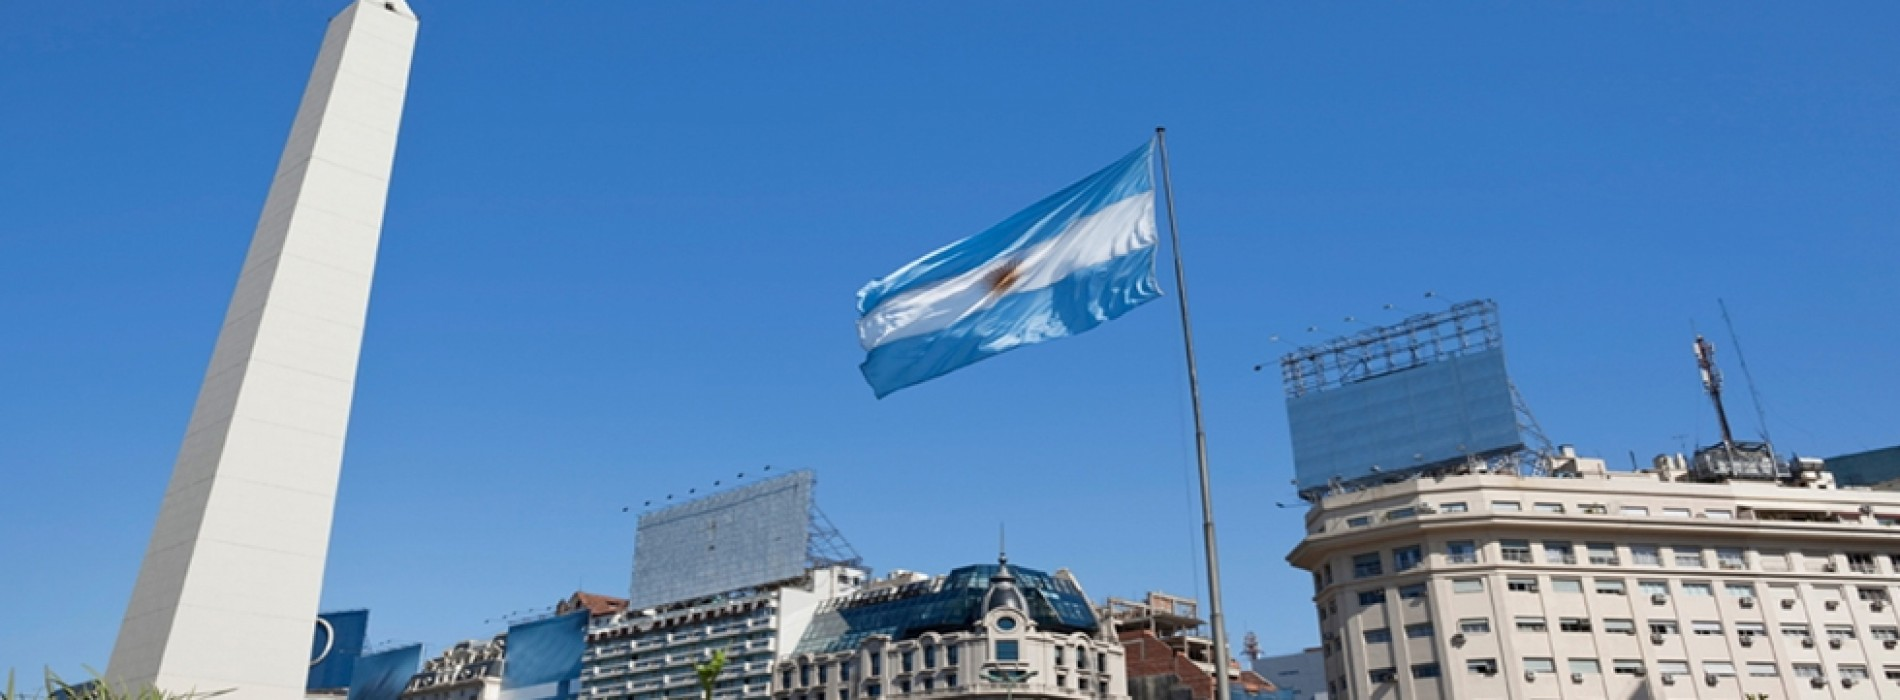 Argentina unfurl its tourism in Spain